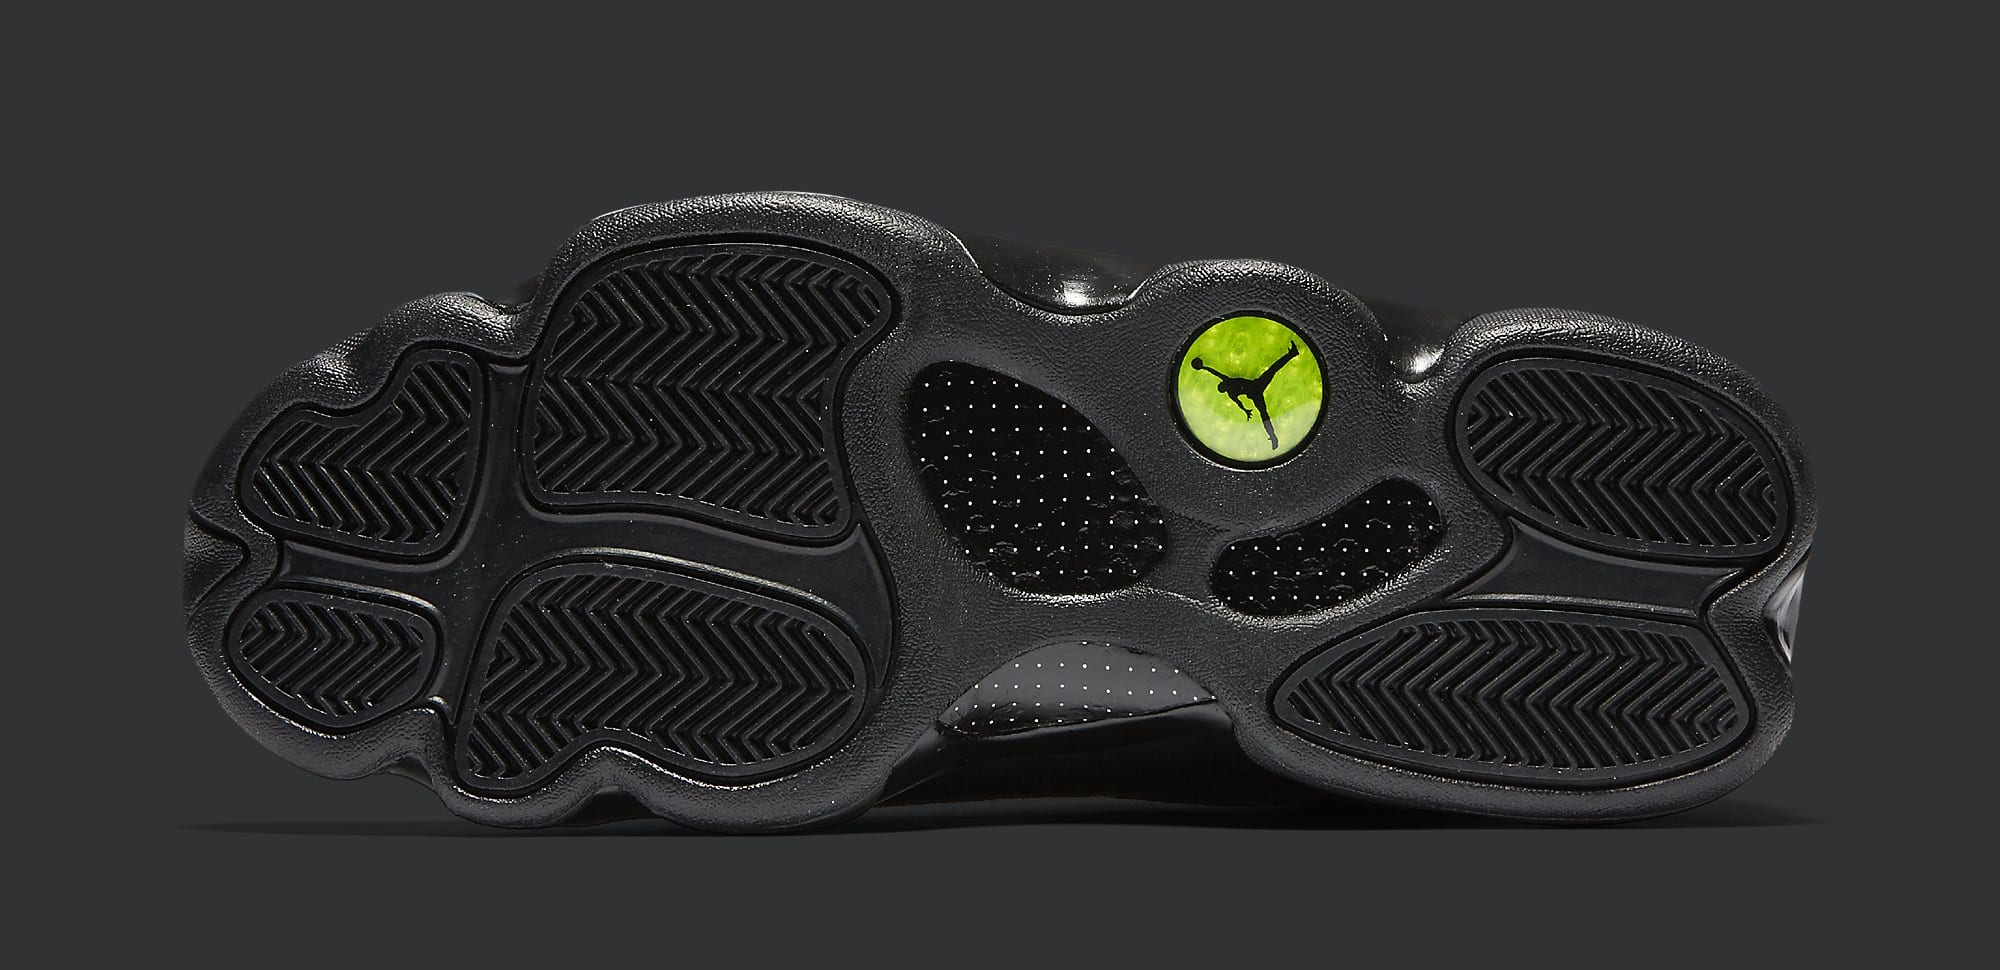 Black Cat Air Jordan 13 414571-011 Sole